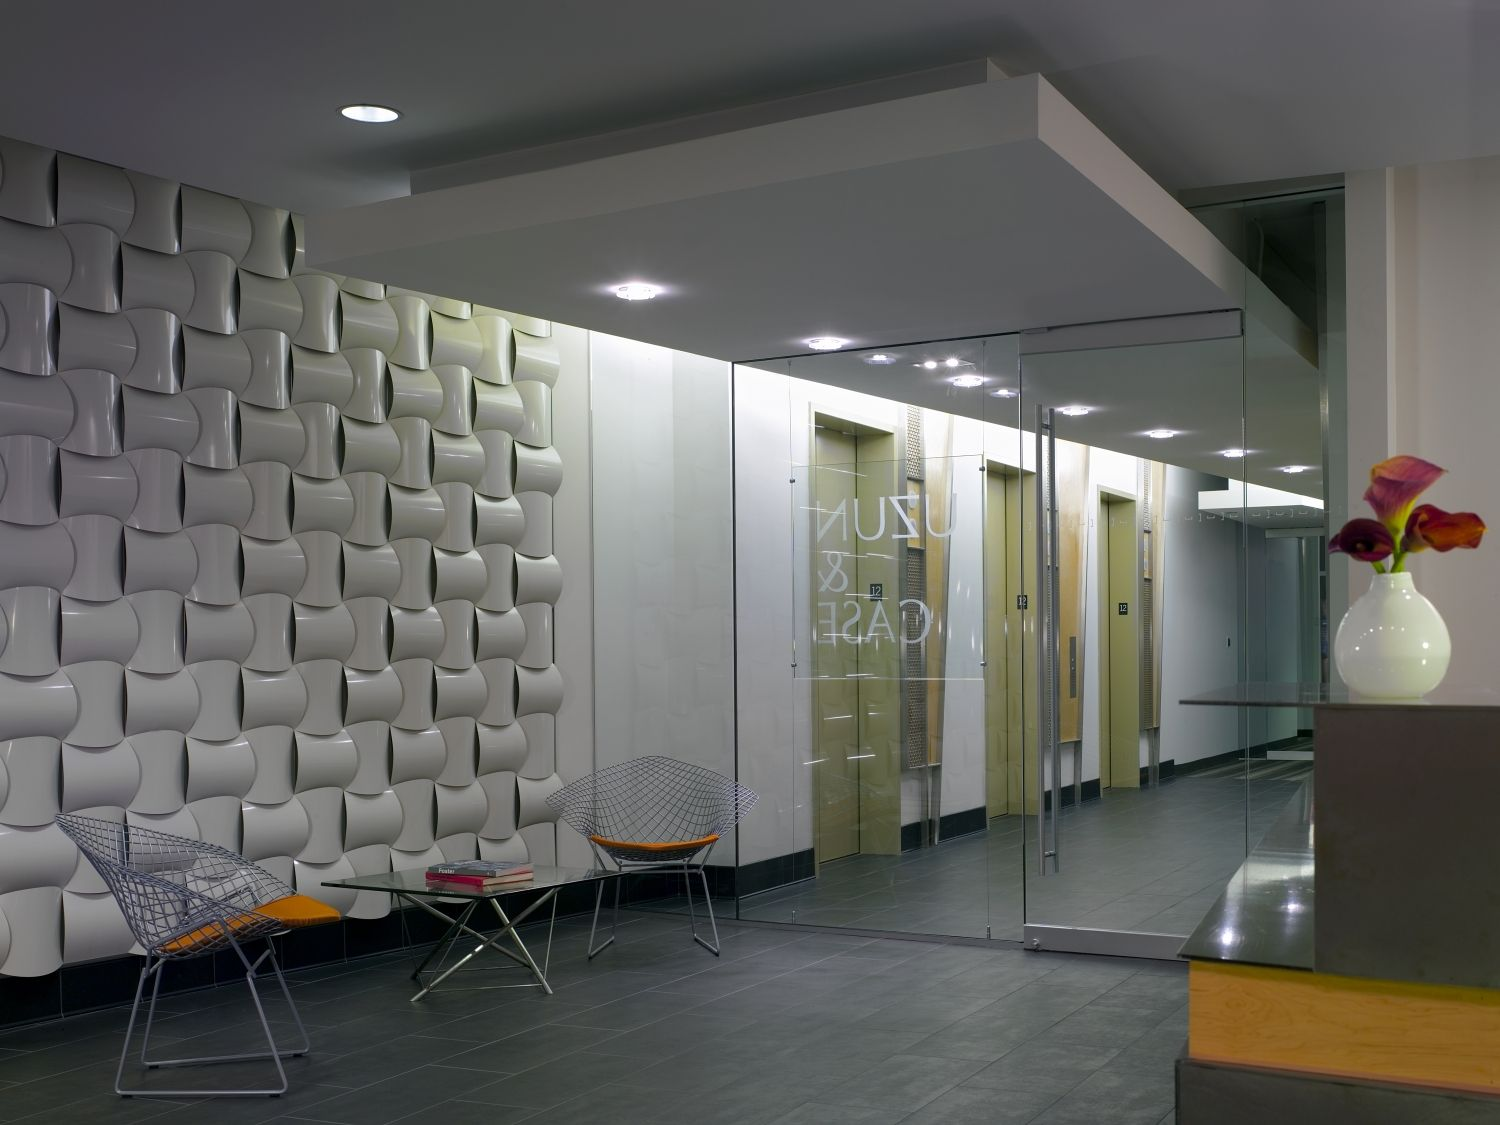 Uzun & Case Engineers Office #tvsdesign http://bit.ly/1ZlXH91 interior design workplace corporate commercial office space